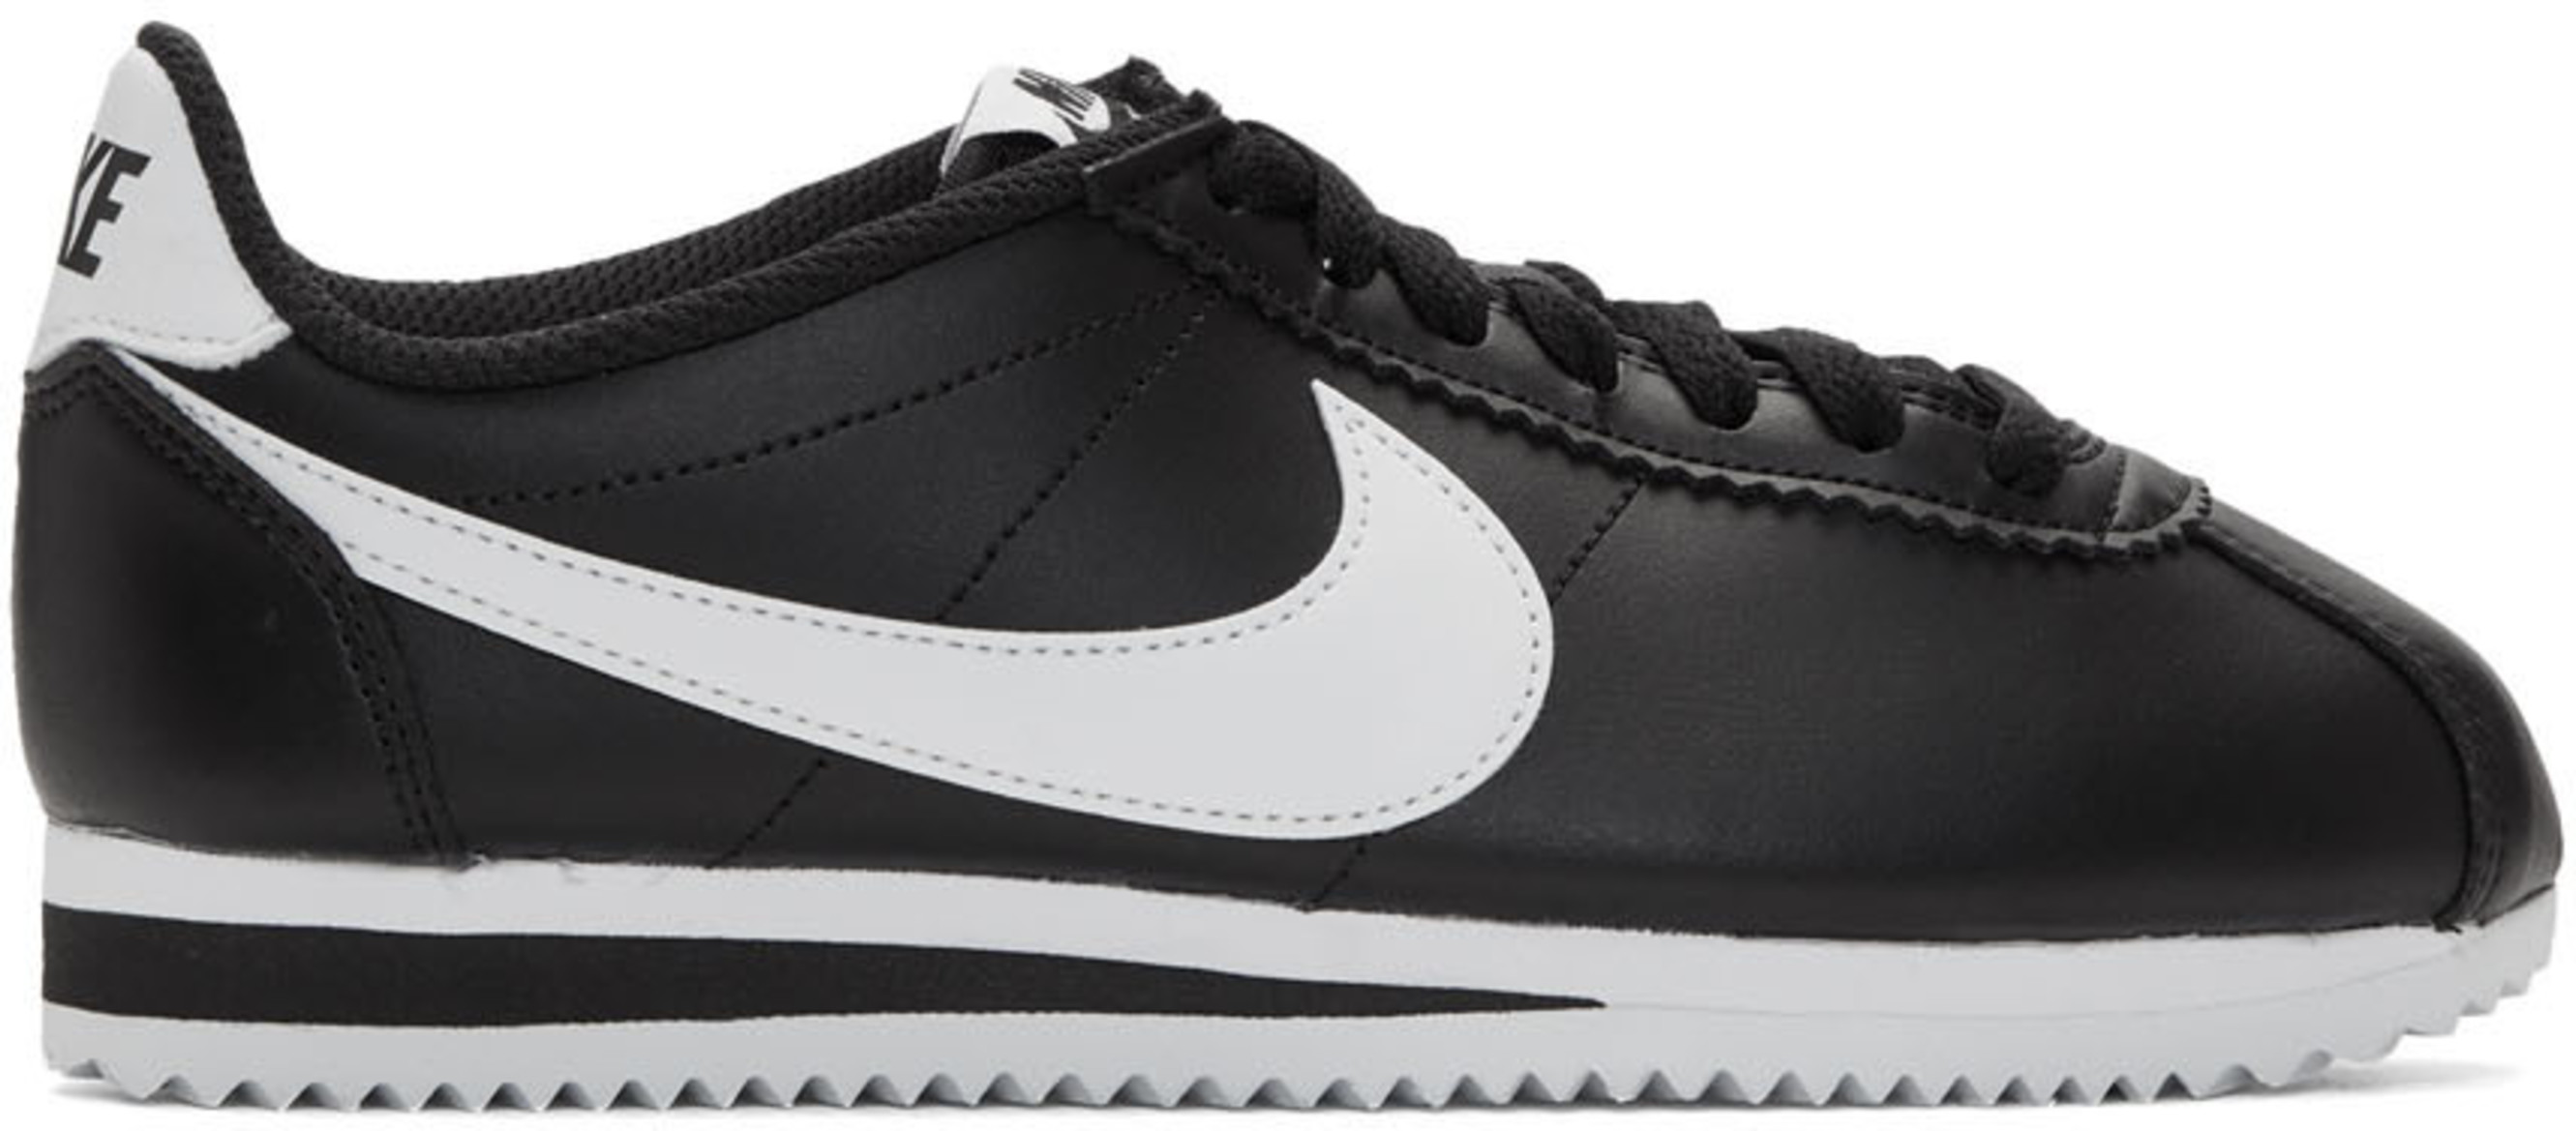 77932d64b94a Nike shoes for Women